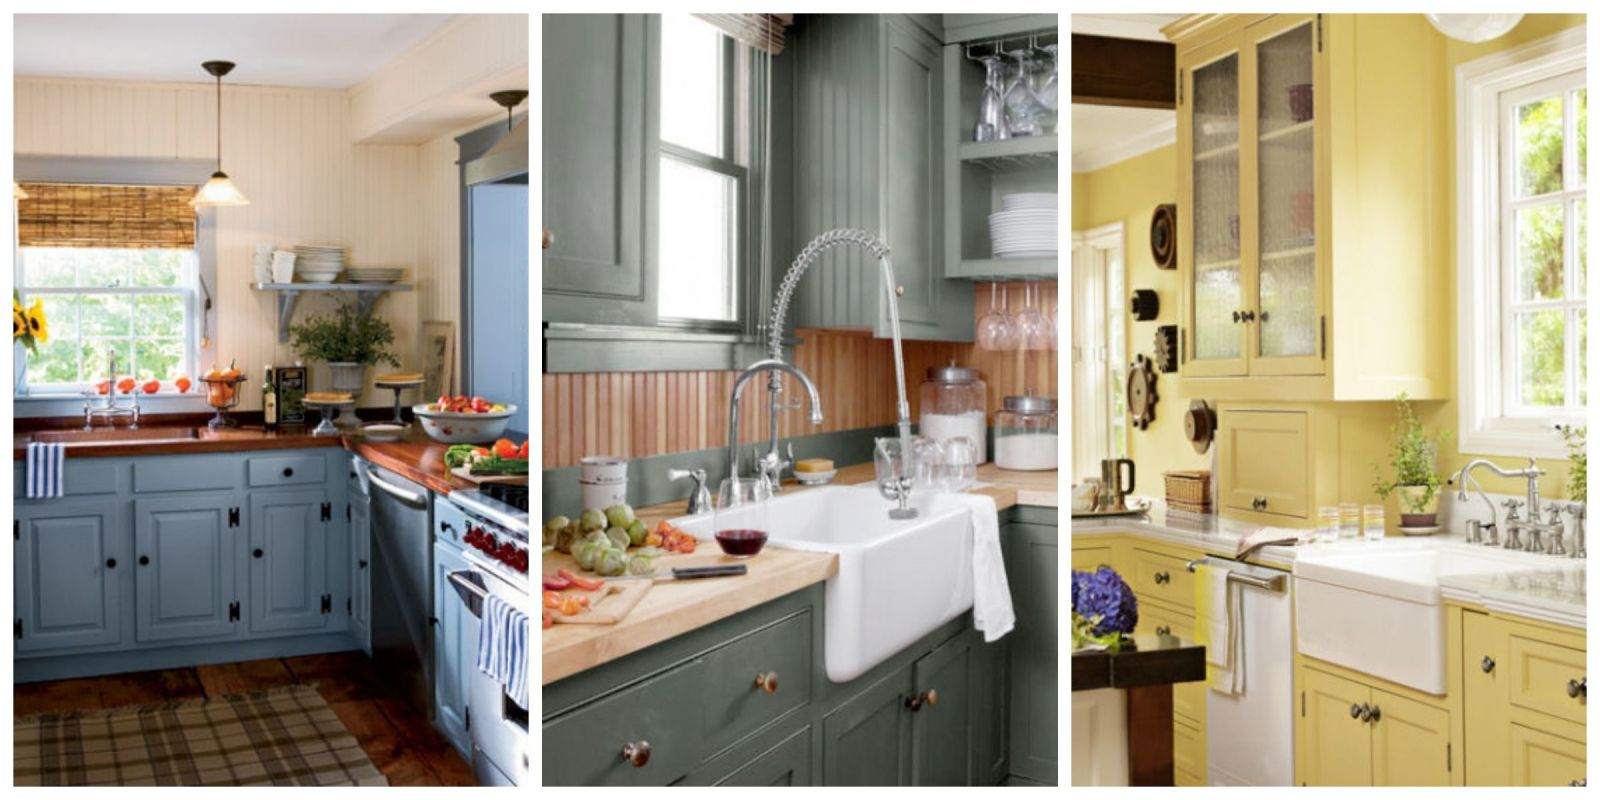 Painting Ideas For Kitchen 15 Best Kitchen Color Ideas  Paint And Color Schemes For Kitchens